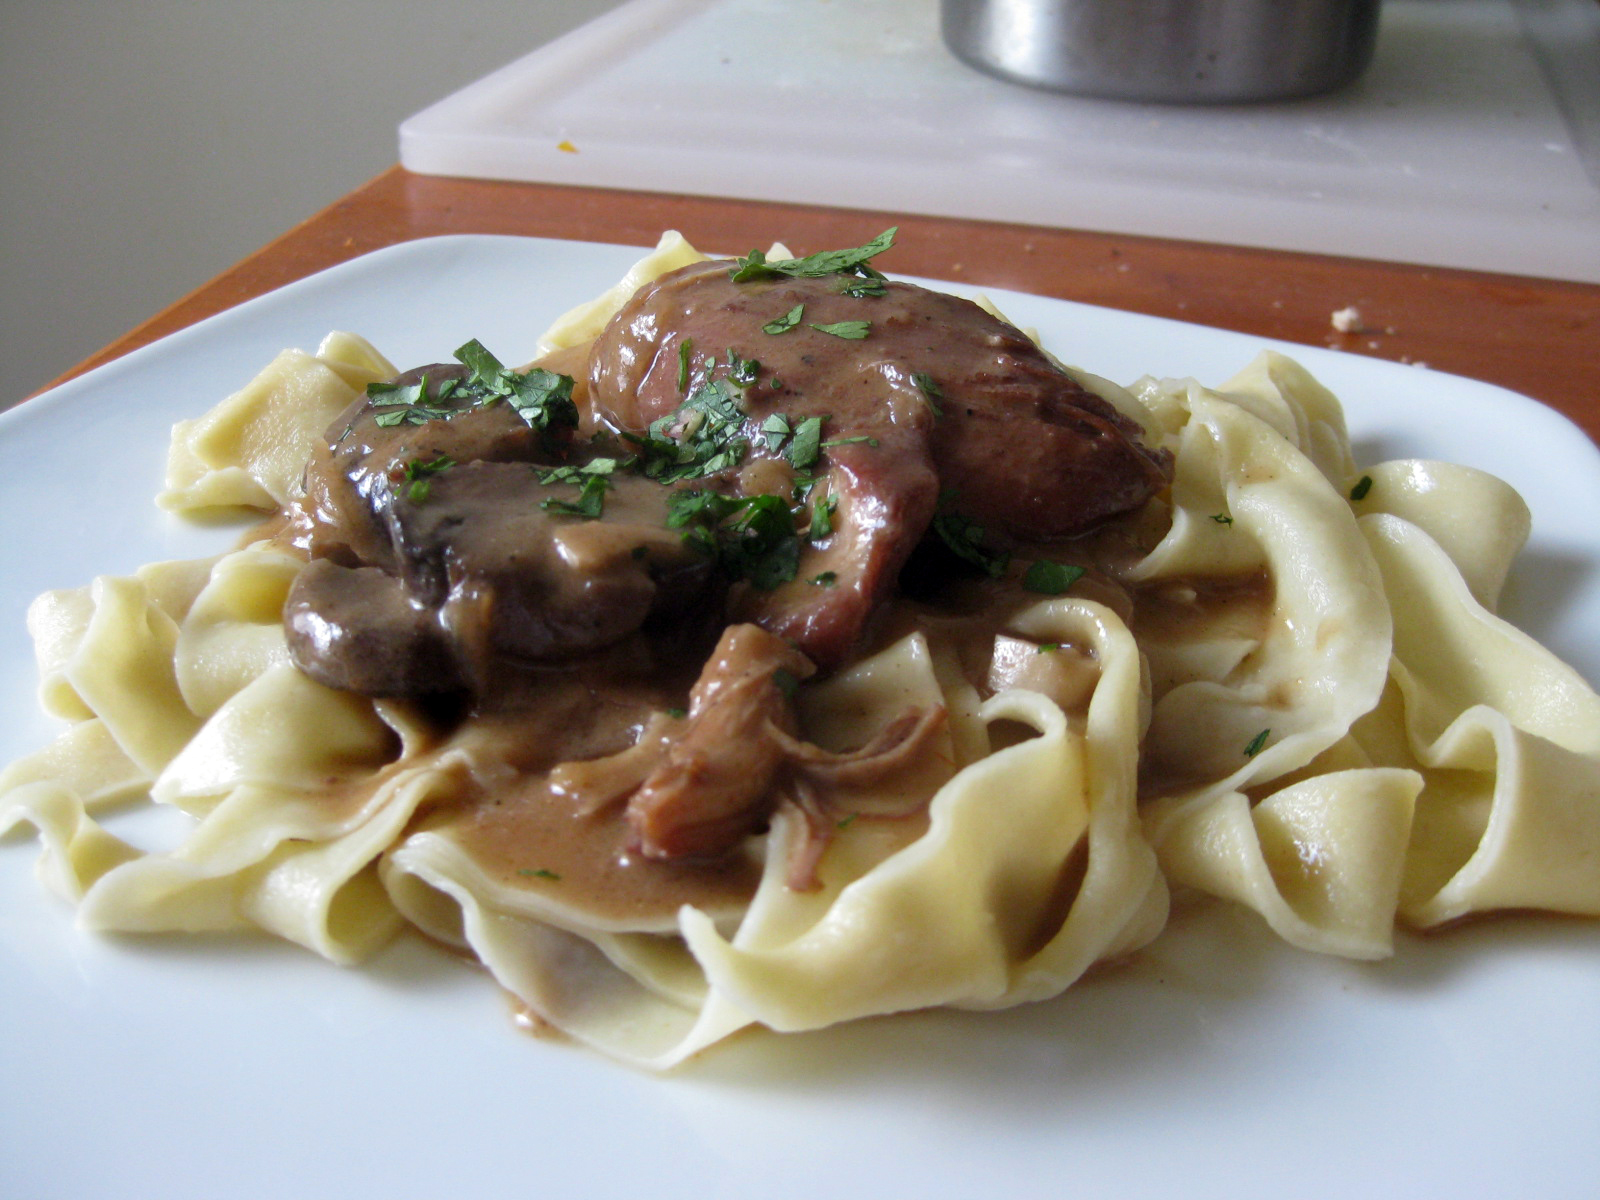 Chicken braised in burgundy wine, stock, dark soy sauce, and coconut milk with onions, garlic, and mushrooms served with fresh pasta